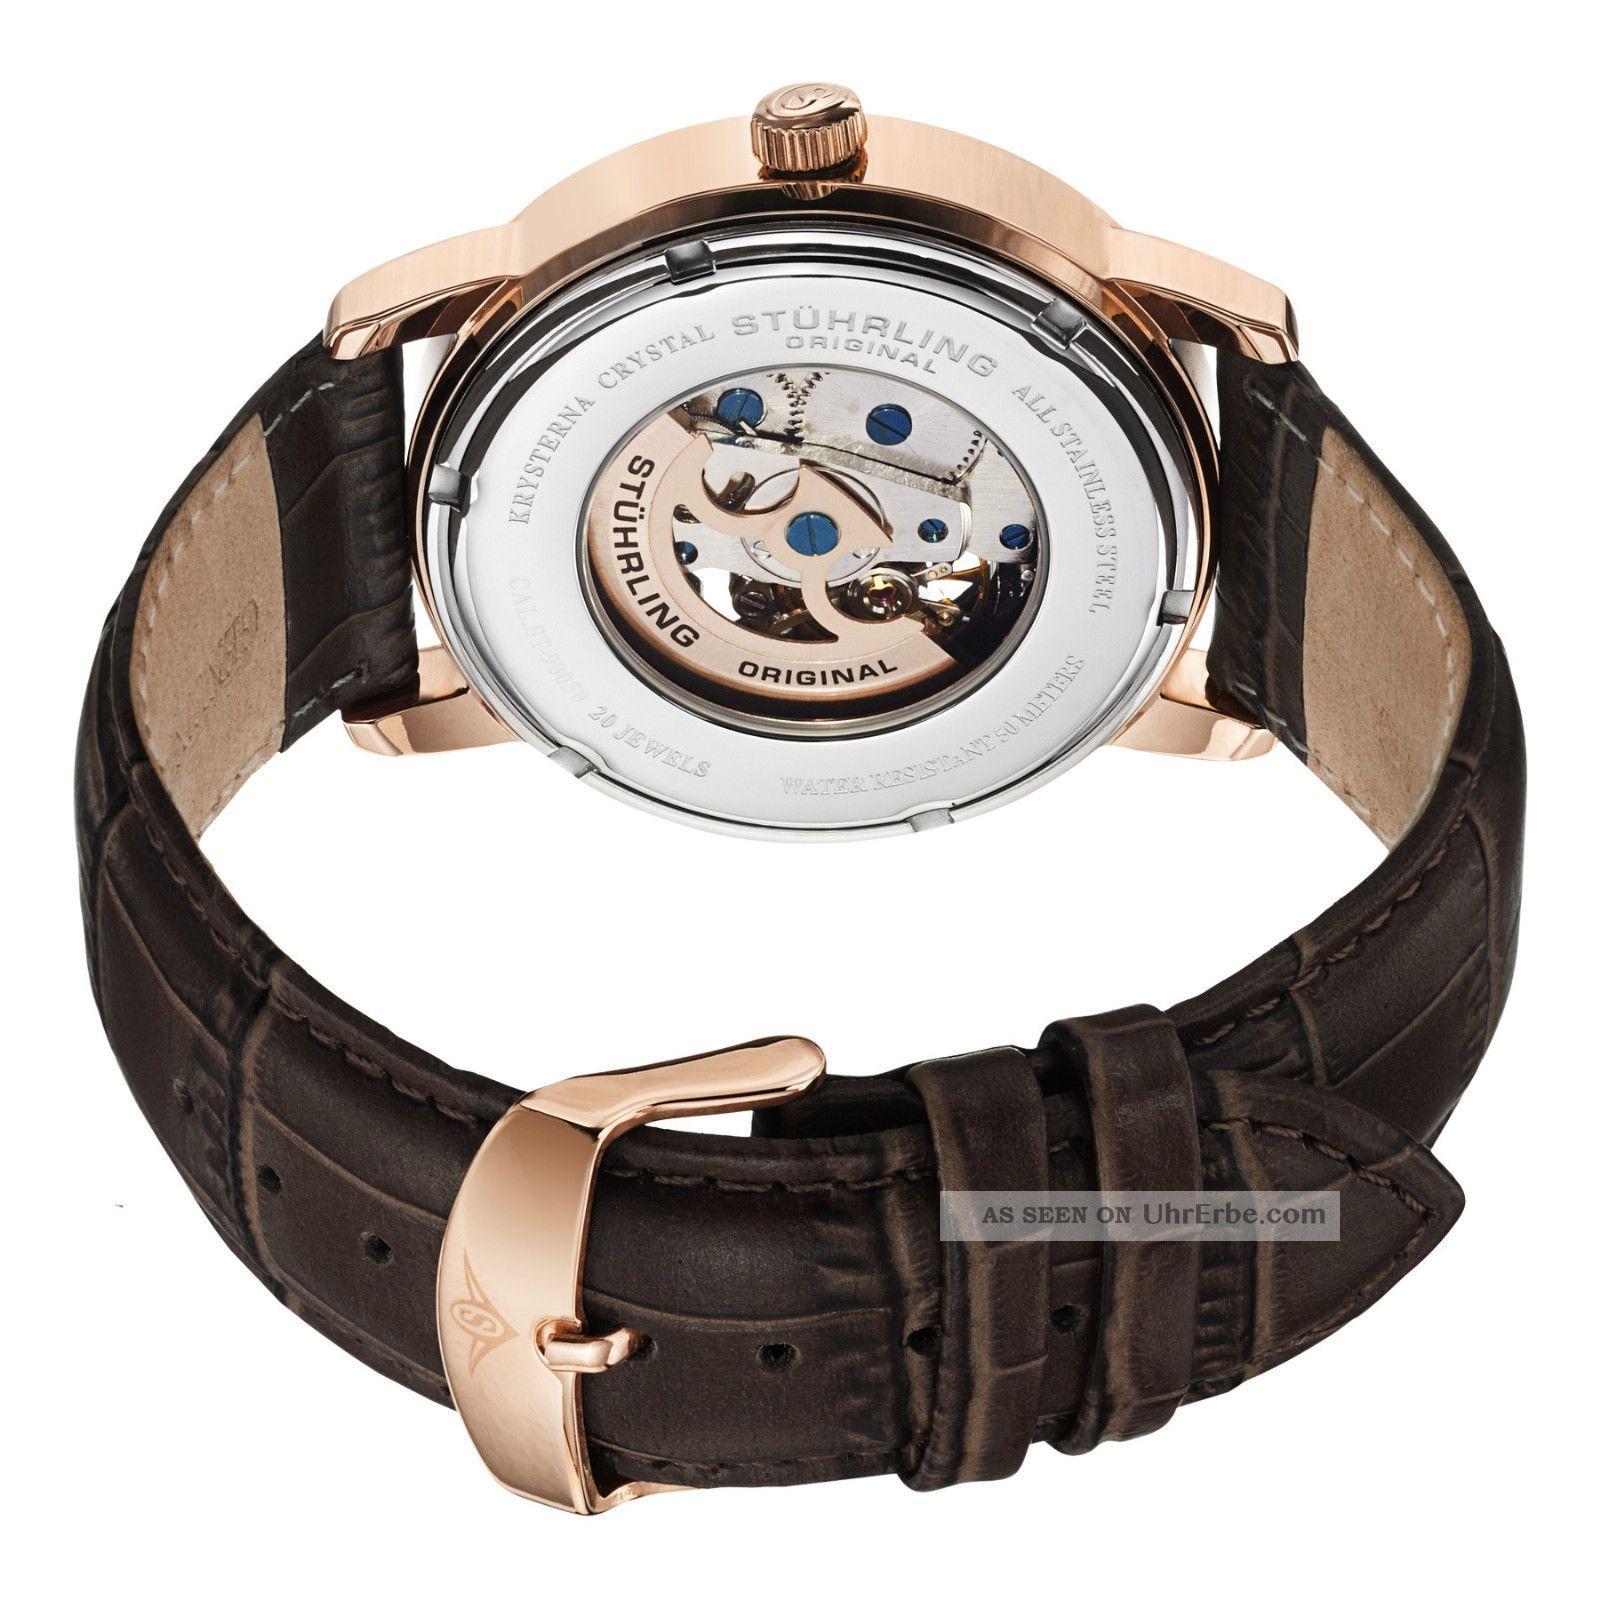 stuhrling delphi oracle rose gold herren automatik uhr lederband uvp 450. Black Bedroom Furniture Sets. Home Design Ideas